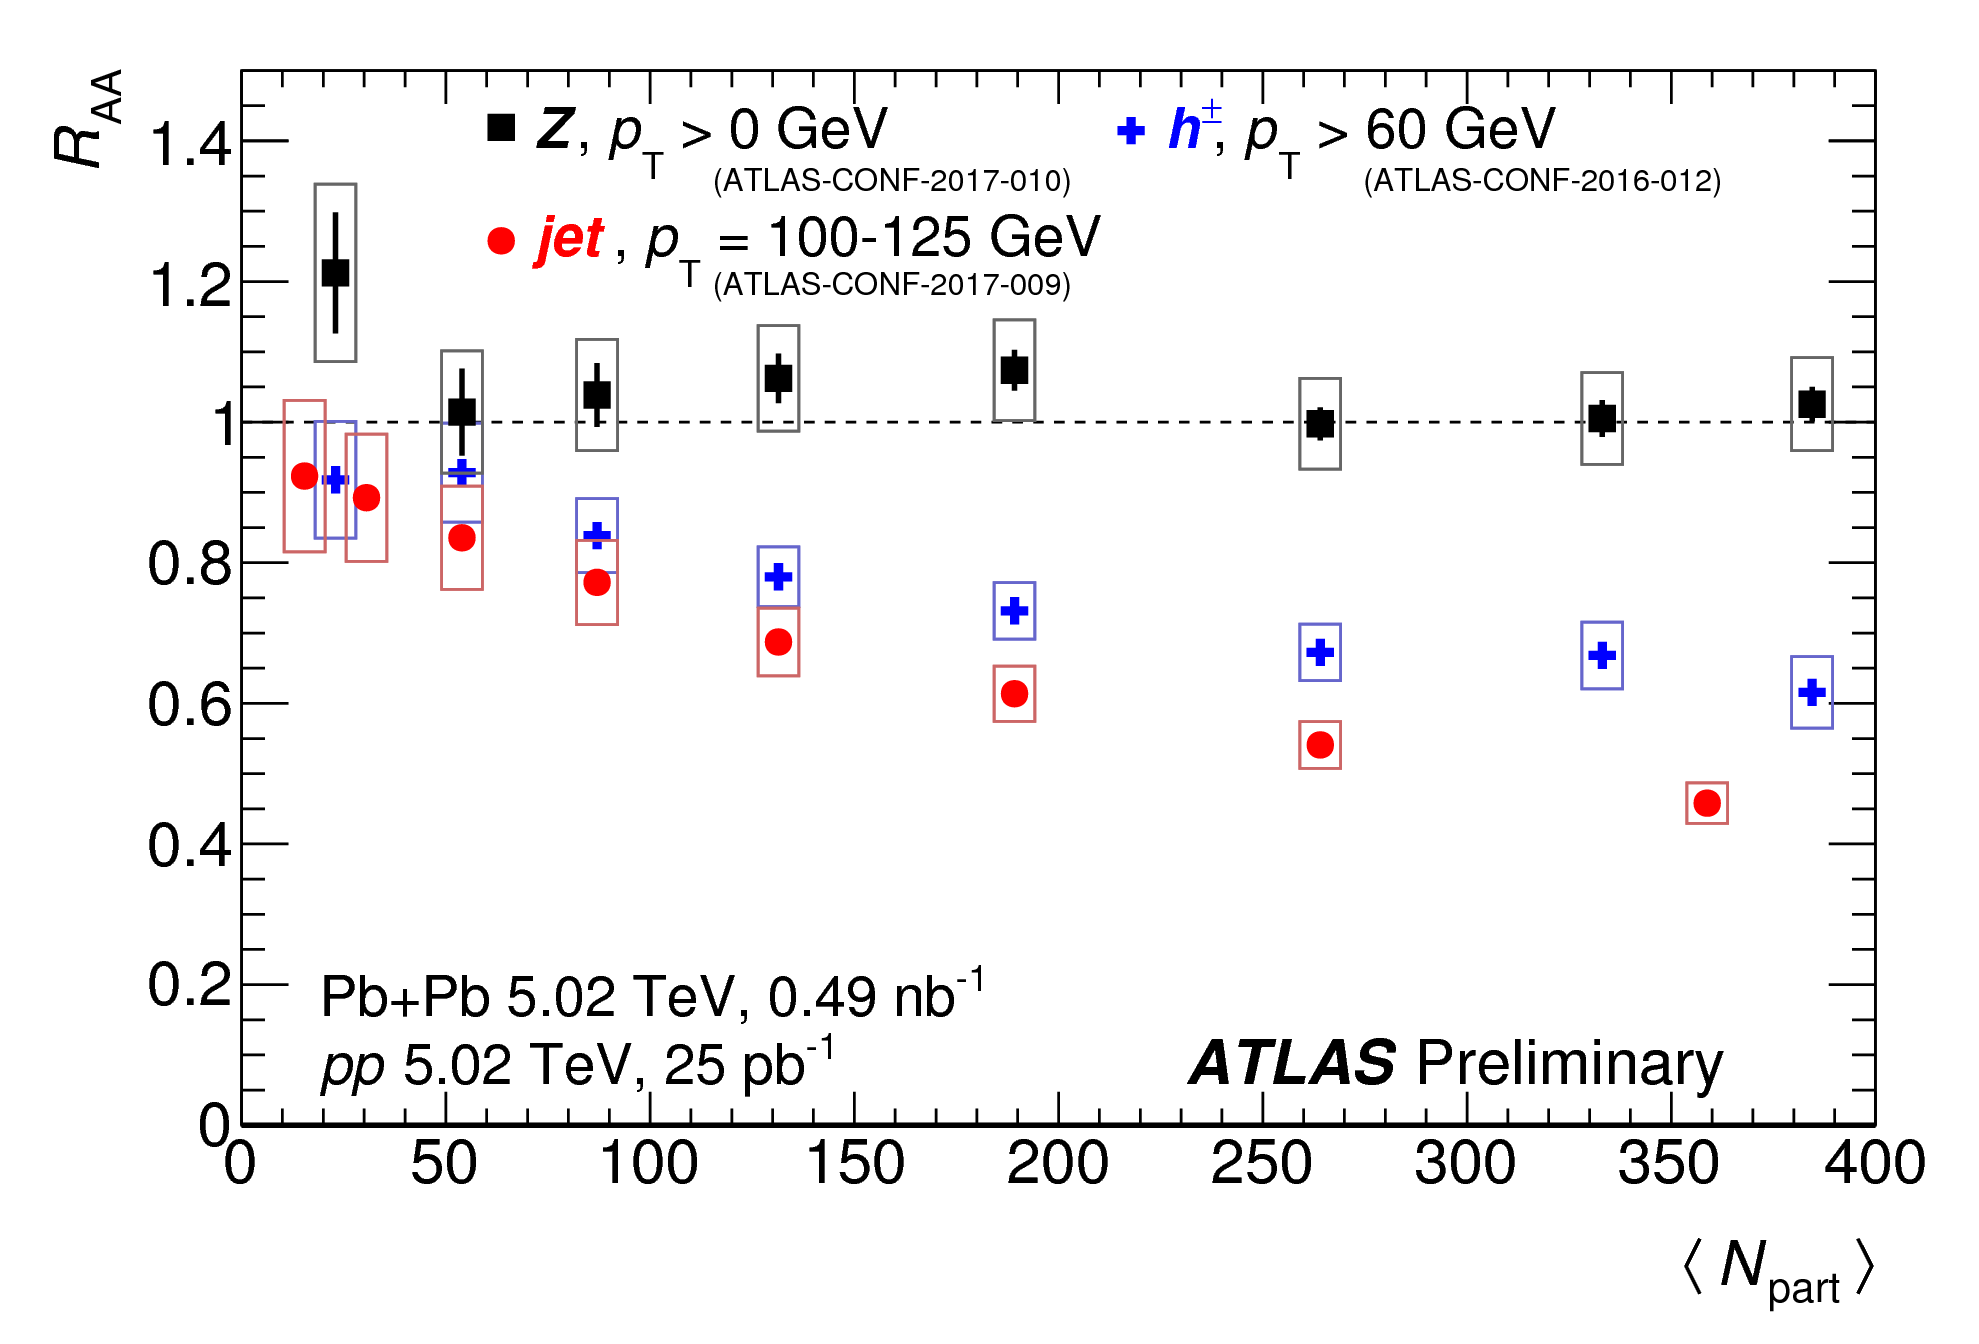 https://atlas.web.cern.ch/Atlas/GROUPS/PHYSICS/CombinedSummaryPlots/HION/ATLAS_HION_Summary_Raa_02/ATLAS_HION_Summary_Raa_02.png